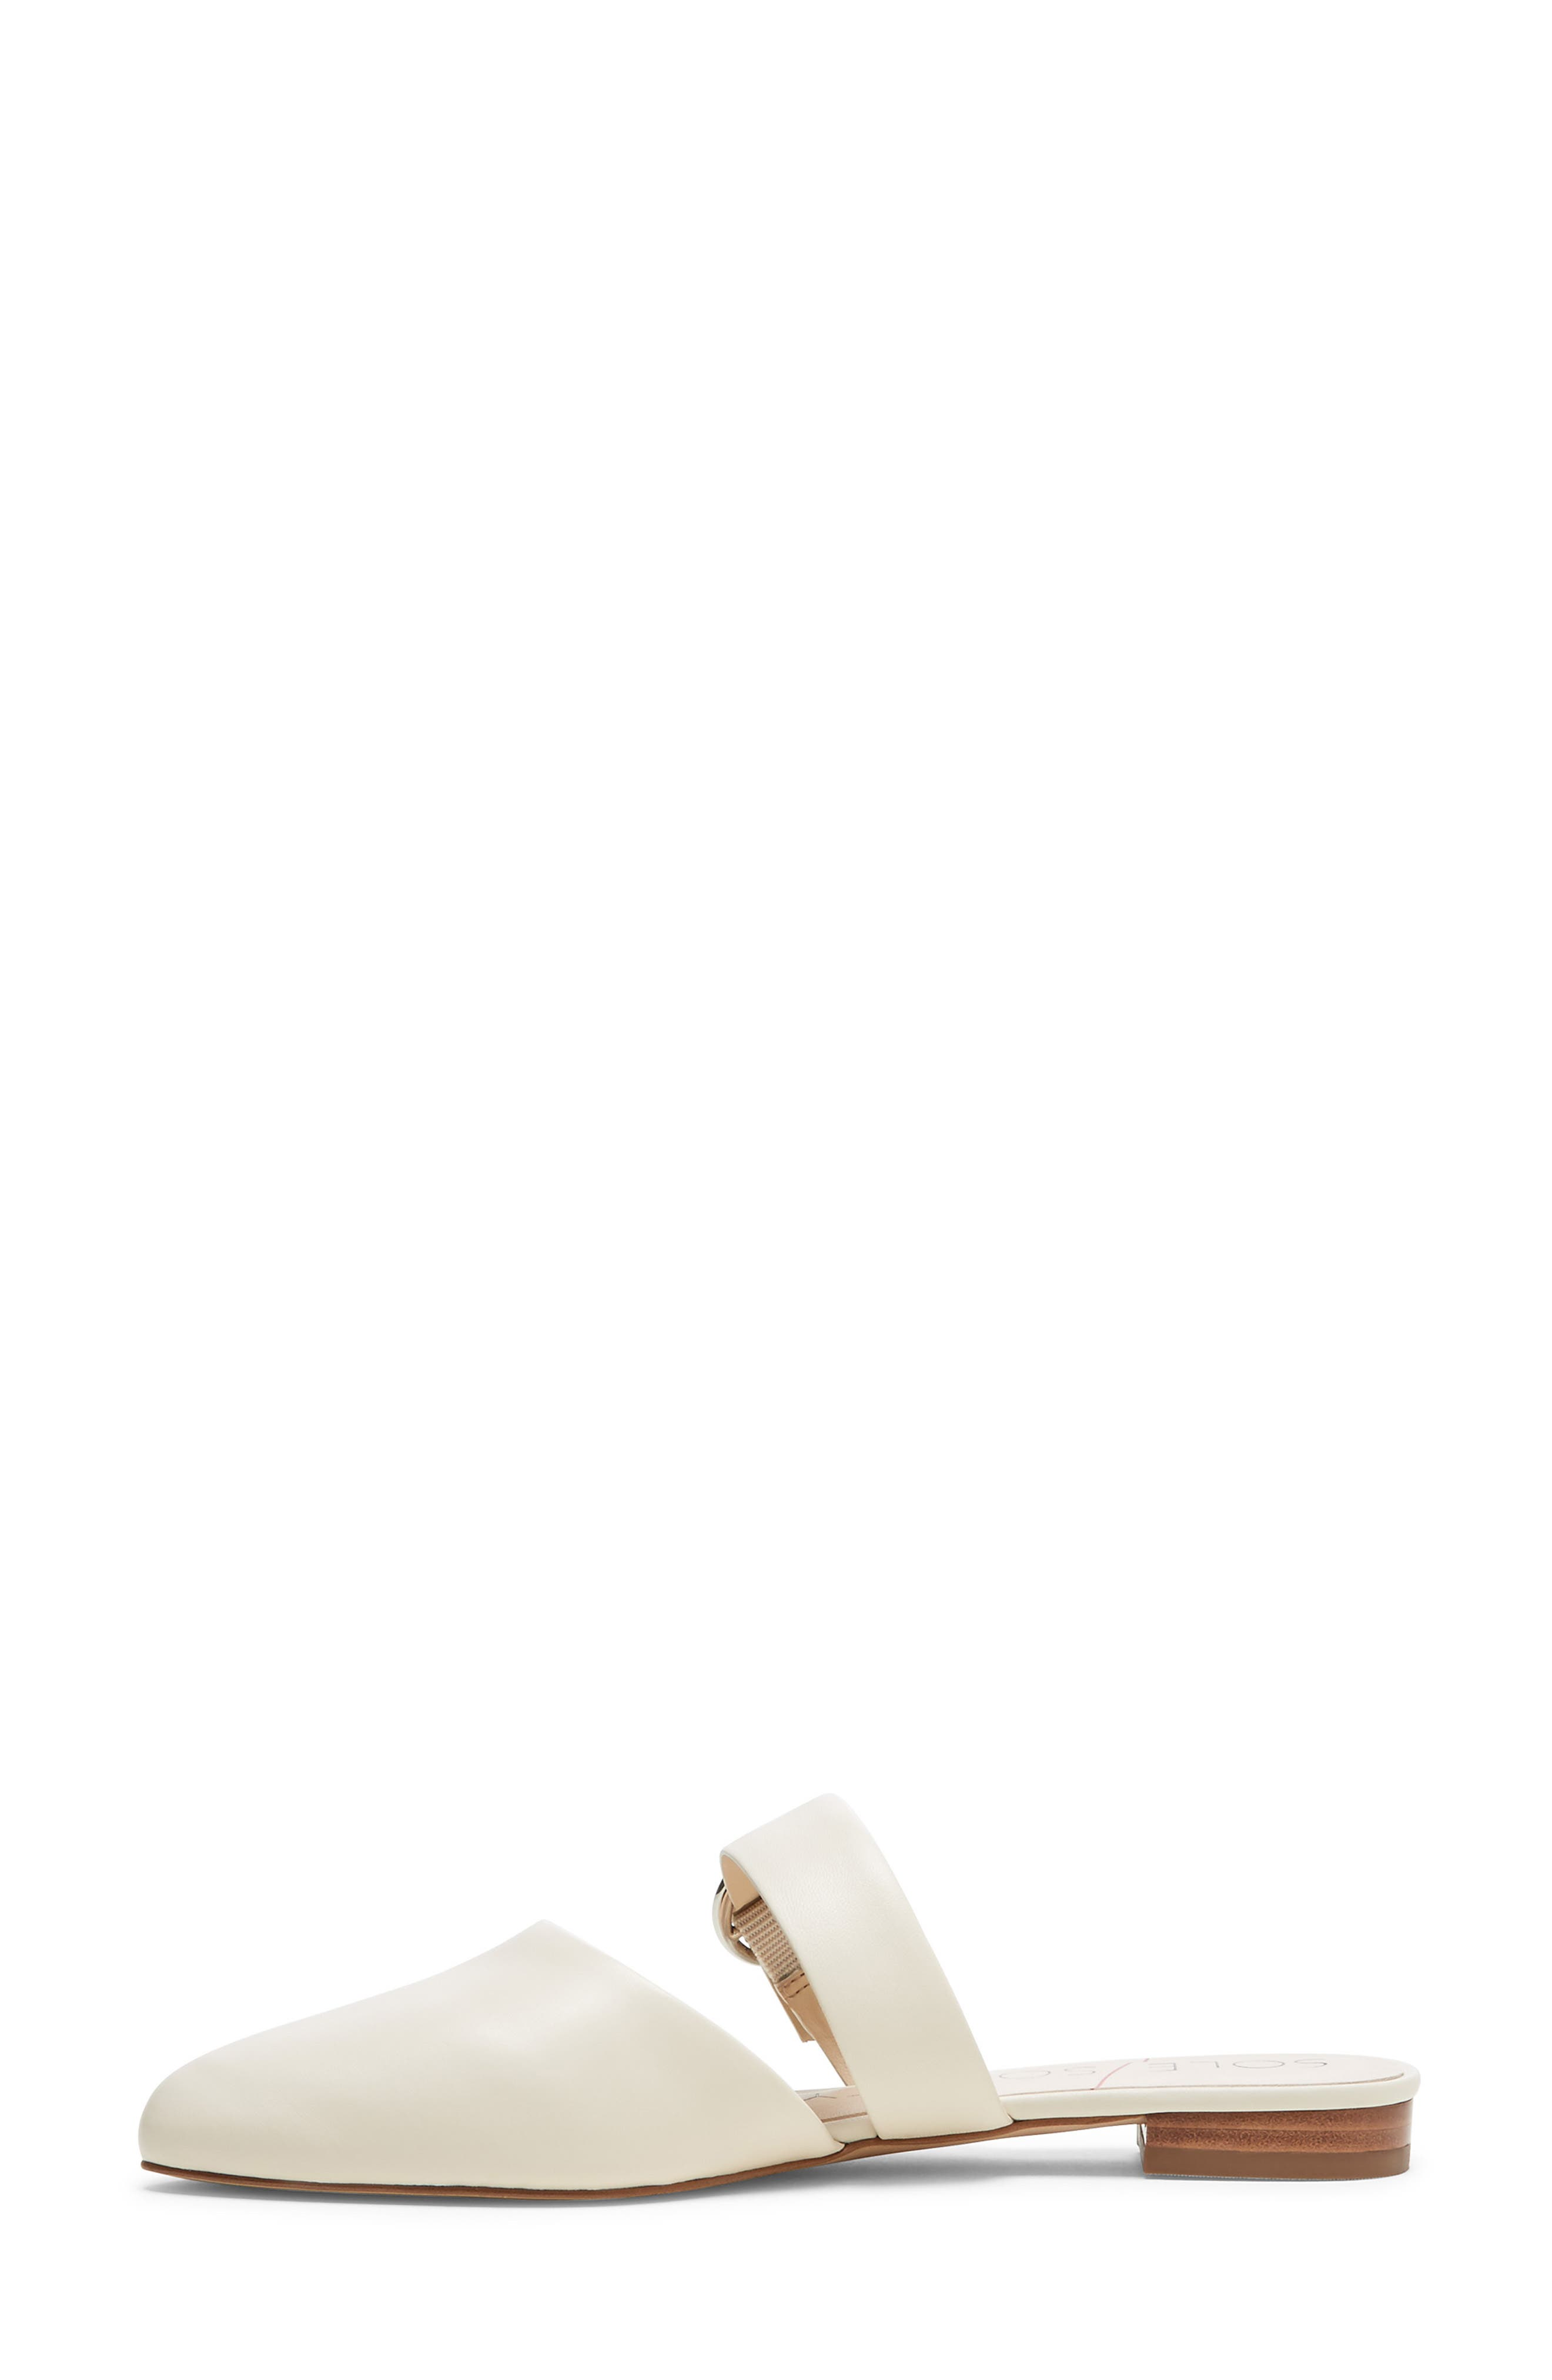 SOLE SOCIETY, Pravar Strappy Pointy Toe Mule, Alternate thumbnail 5, color, CREAM LEATHER